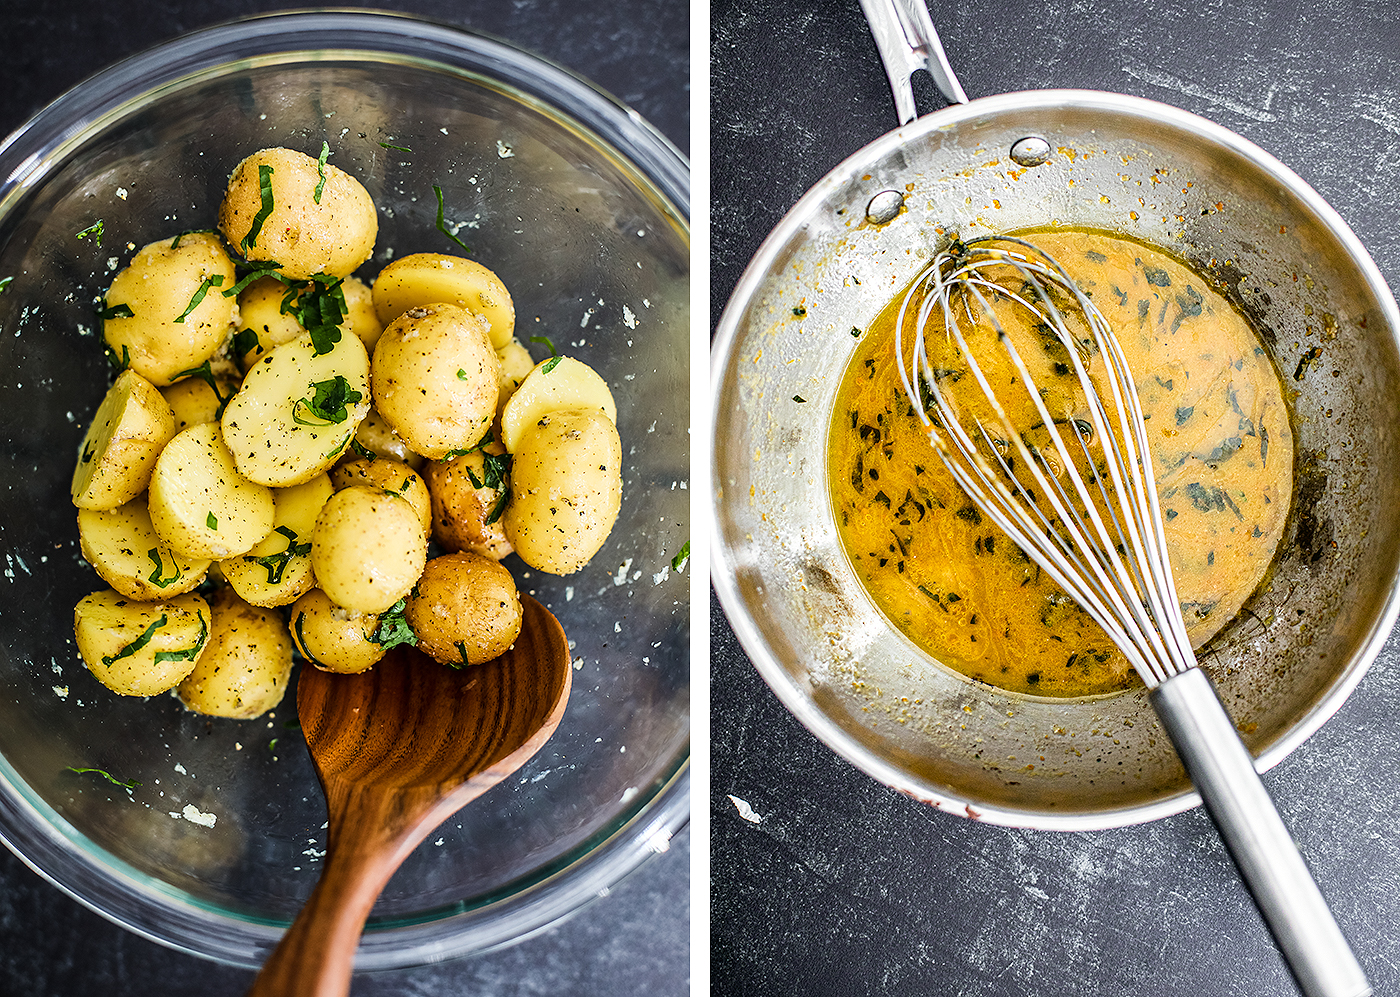 Uncooked potatoes in bowl mixed with seasoning and saucepan with whisked bagna cauda.